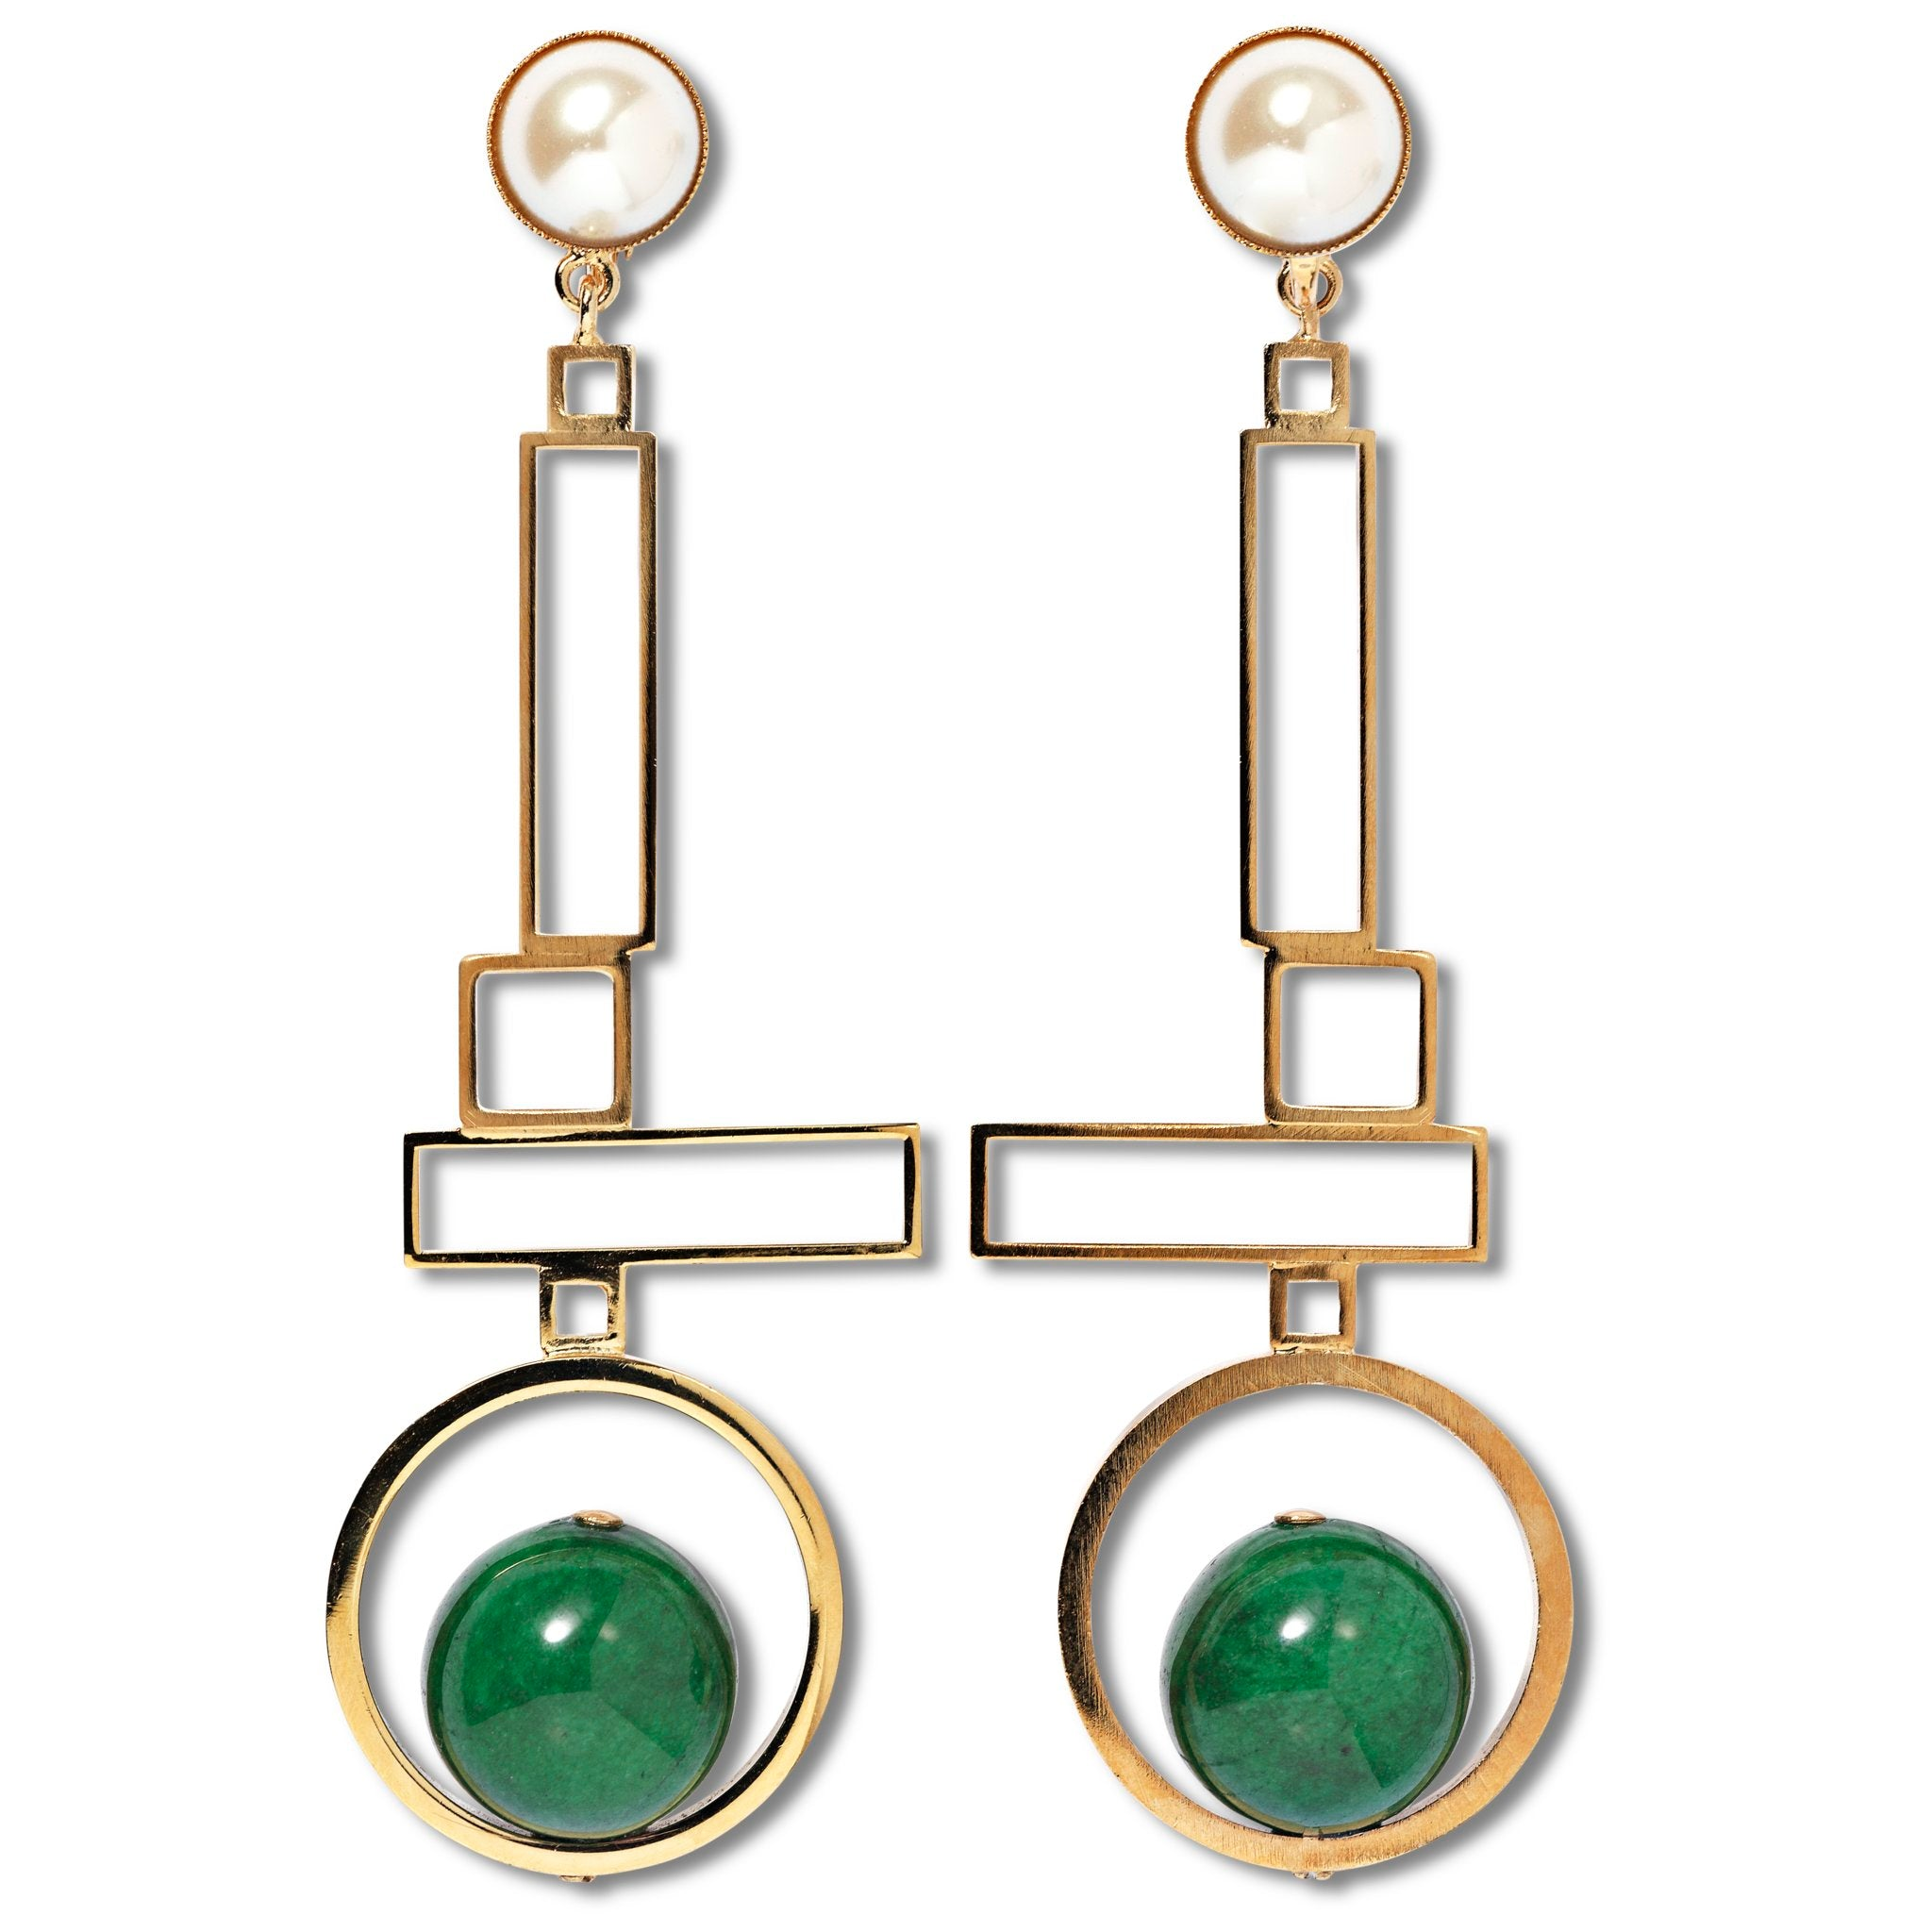 Clip earrings with green agate and faux pearls in gold-tone brass